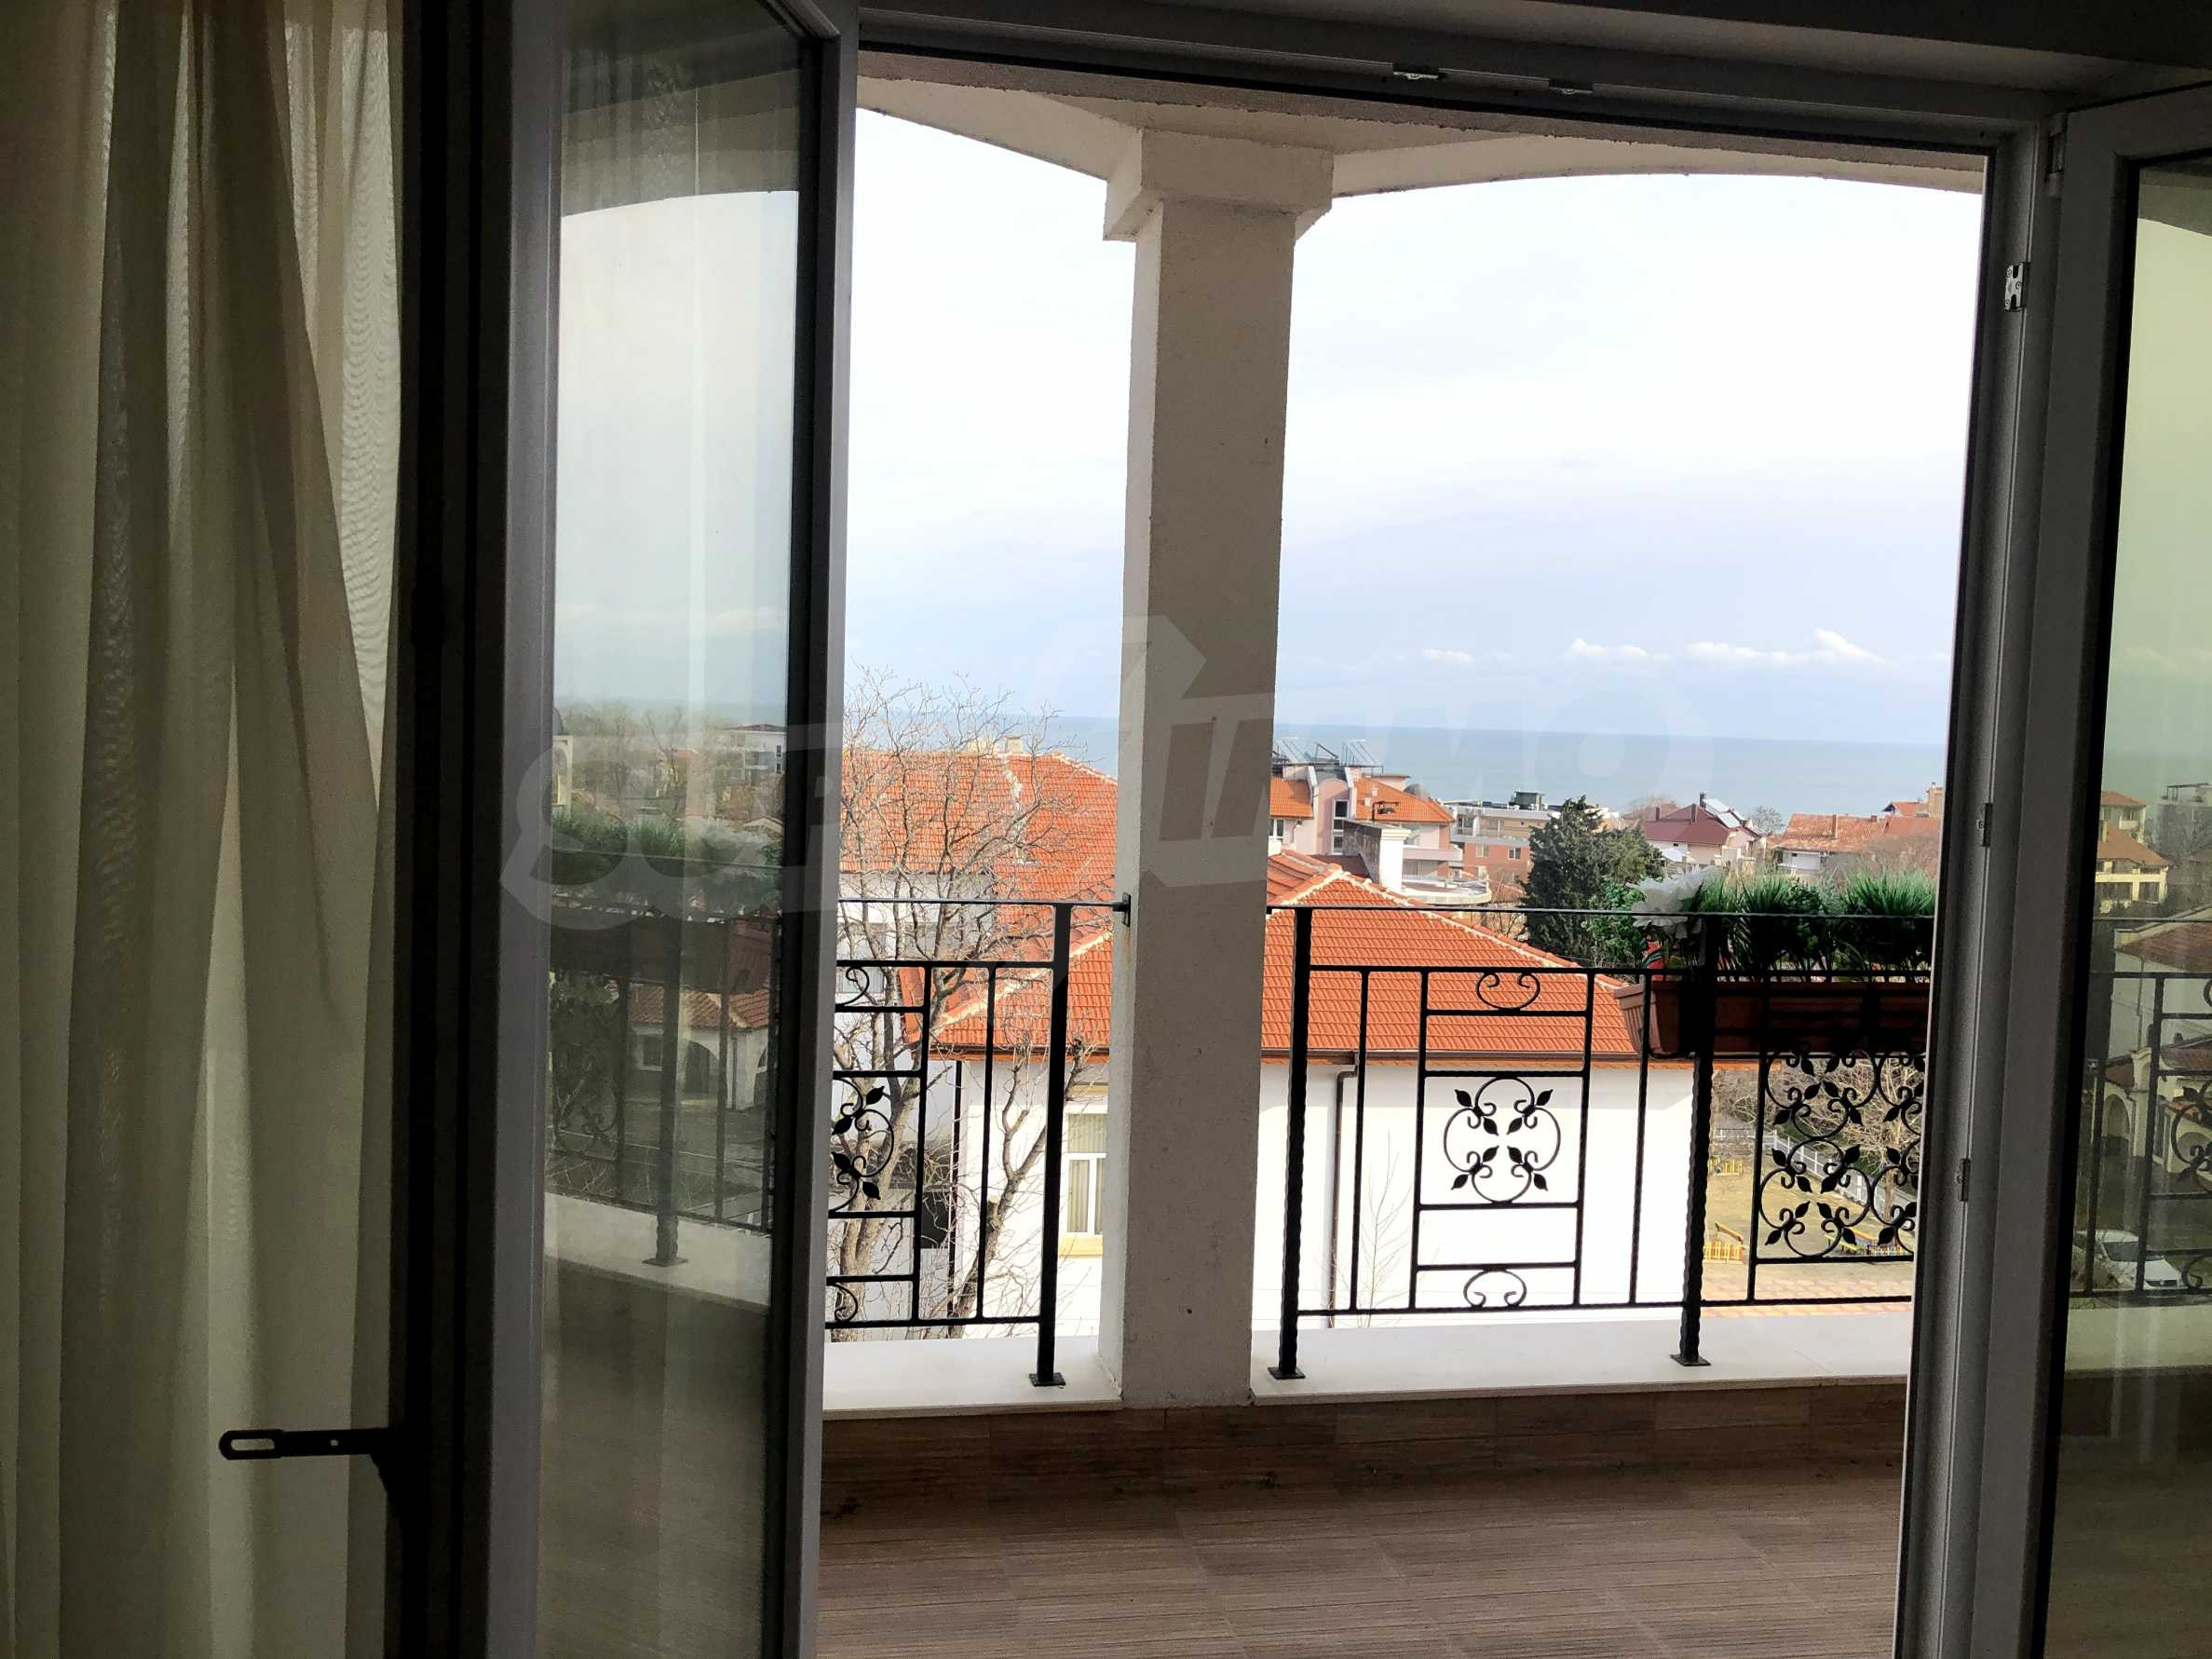 Apartment The Center - turnkey property with sea view, in the center of Obzor 19